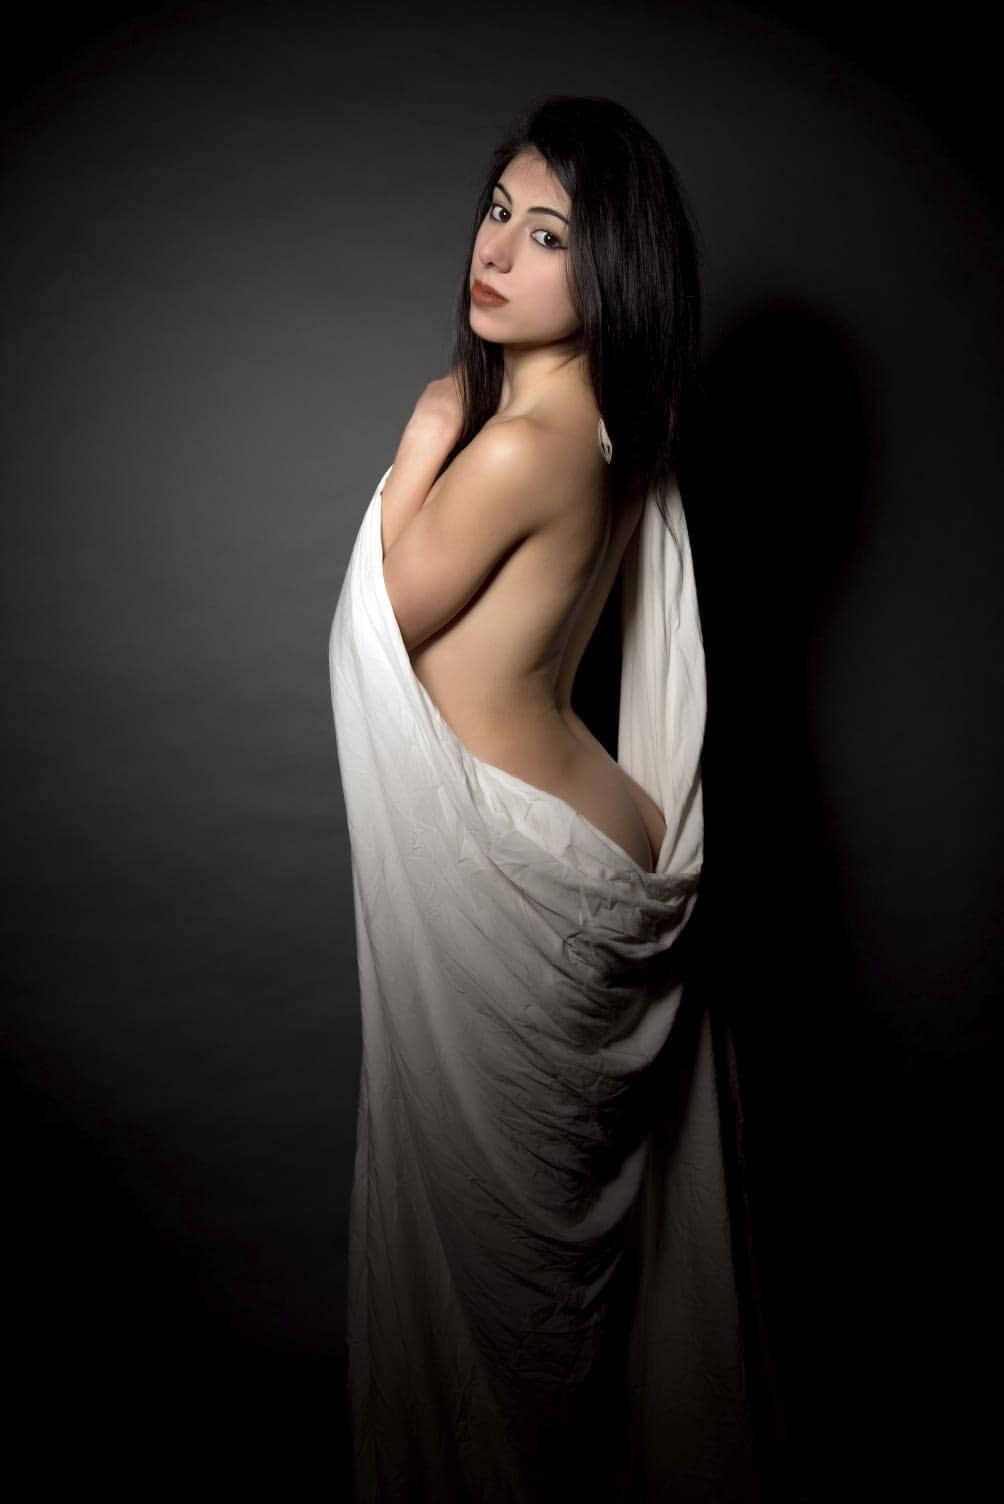 Beautiful Italian model Cloty @__cloty__ looking over her shoulder draped in a white sheet revealing her booty for a boudoir photo session